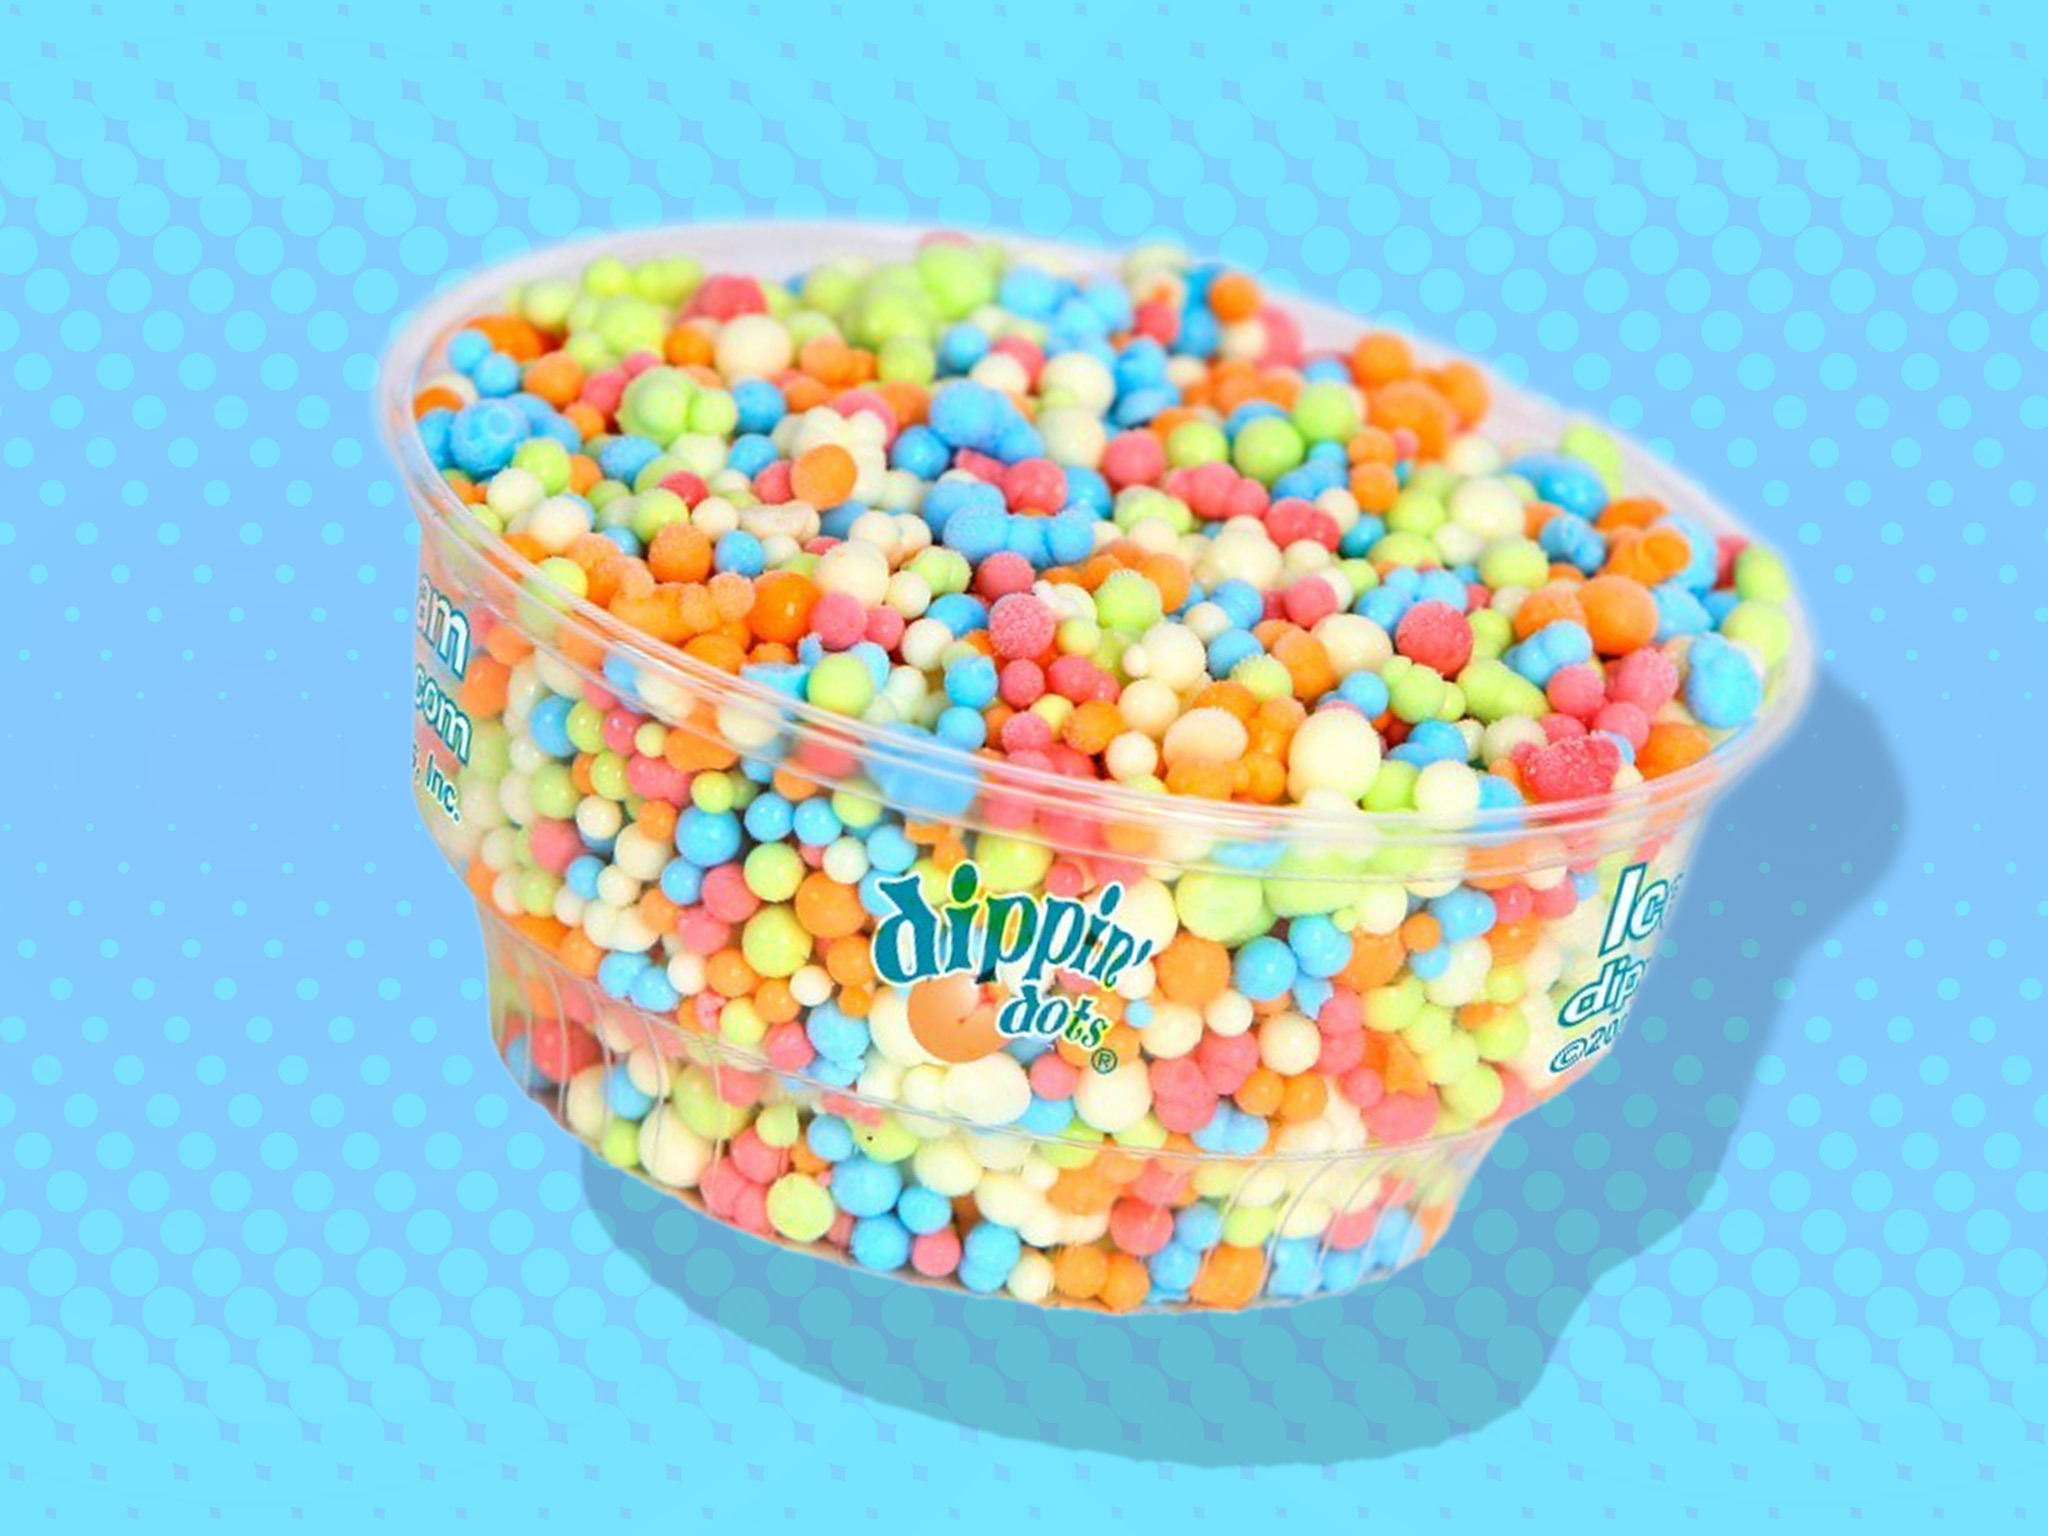 Dippin' Dots is opening its first NYC flagship store